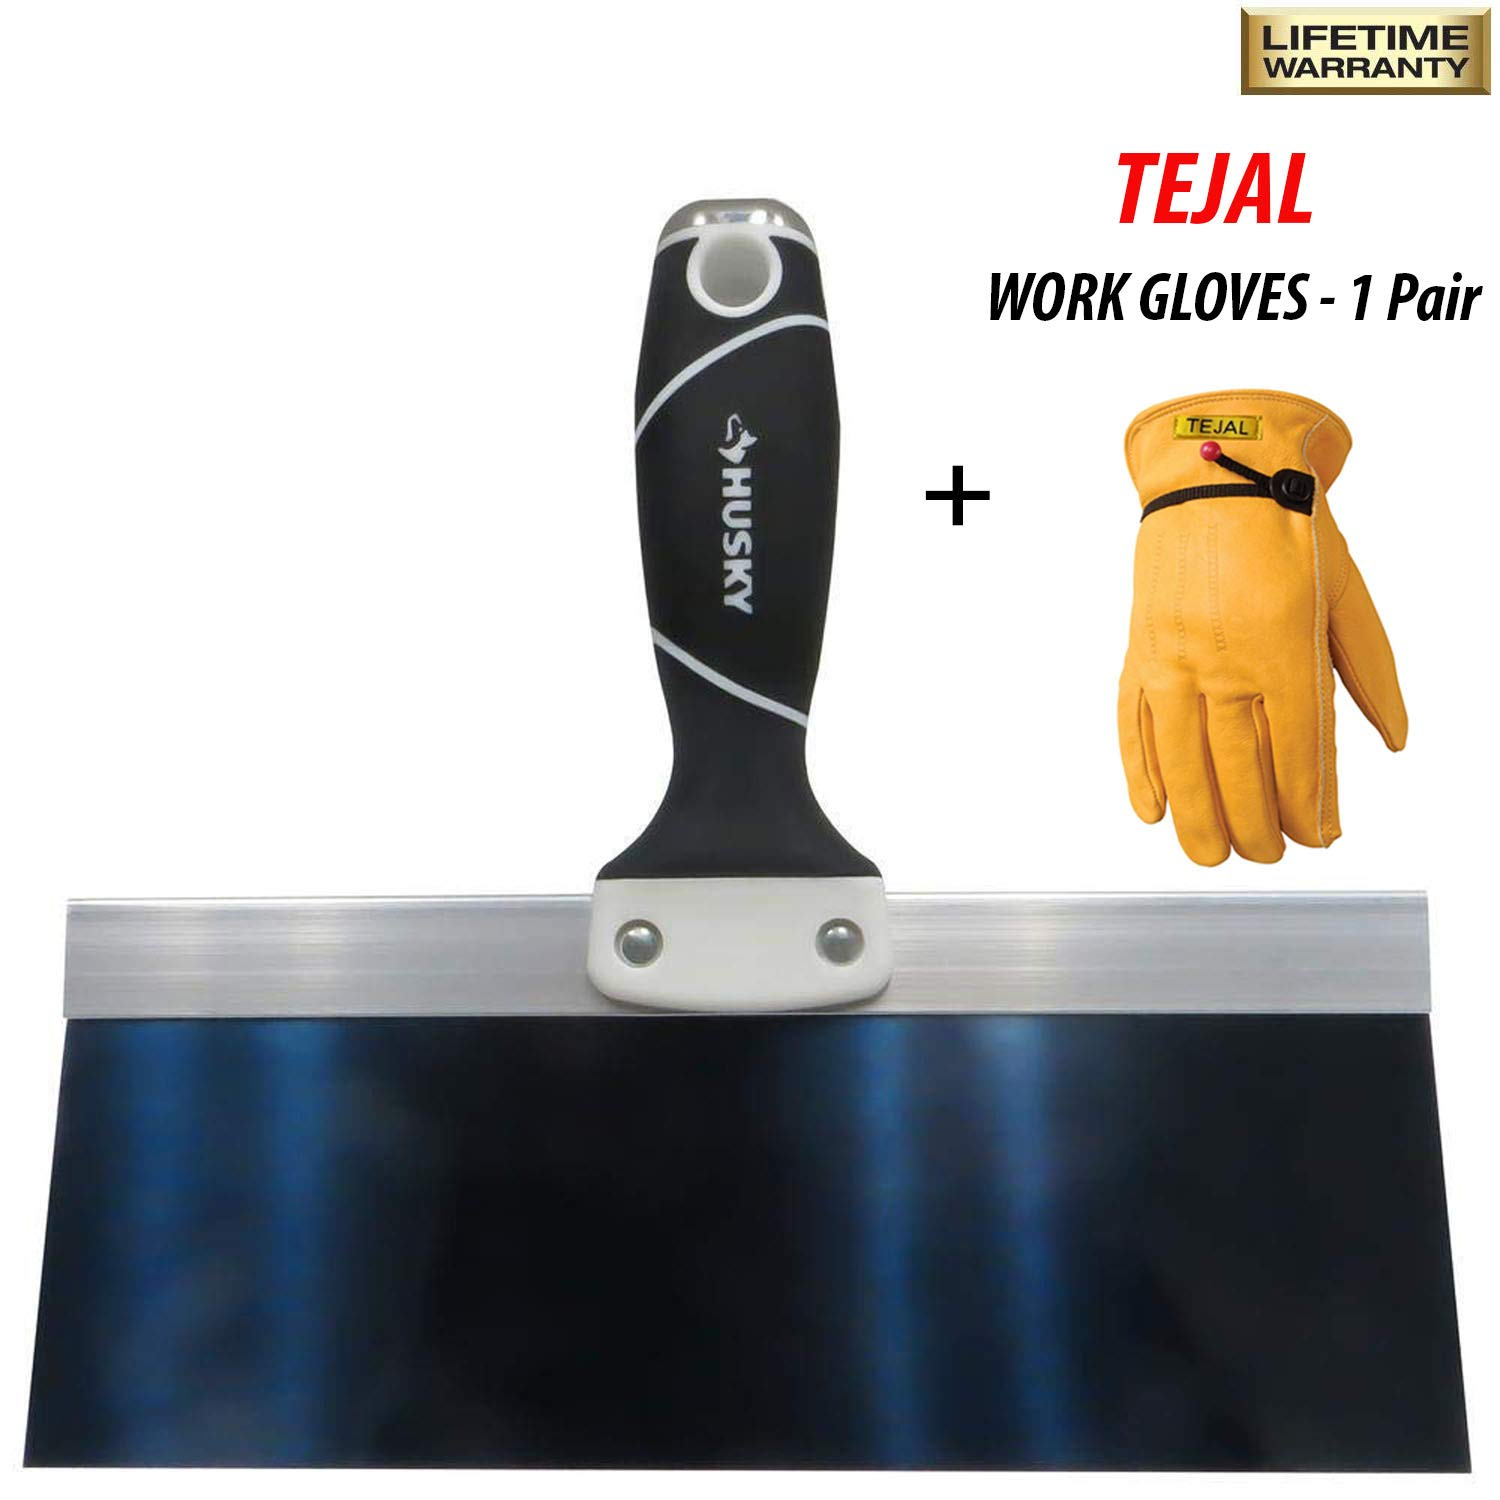 Husky Taping Knife - 10-inch, Stainless Steel, Soft Grip Handle, Hammer End with TEJAL Cowhide Leather Work Gloves 1 Pair (Large Size) - Model #BTK10HD